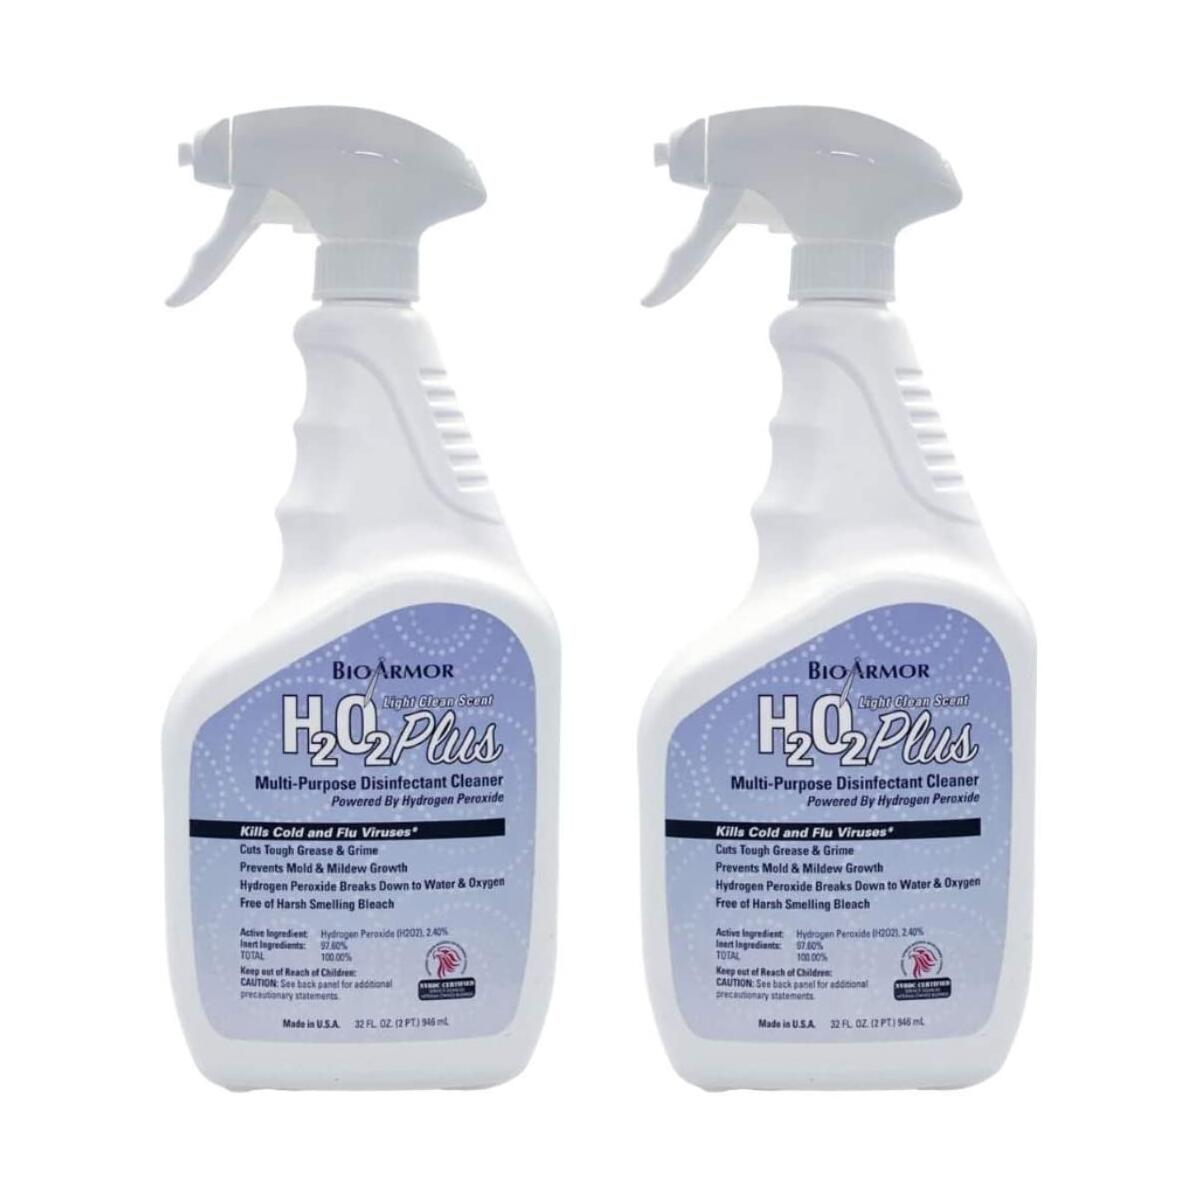 BioArmor H2O2 Plus Multi Purpose Disinfectant Cleaner 32oz Spray - 2 PACK - Made In USA - NVBDC Certified …